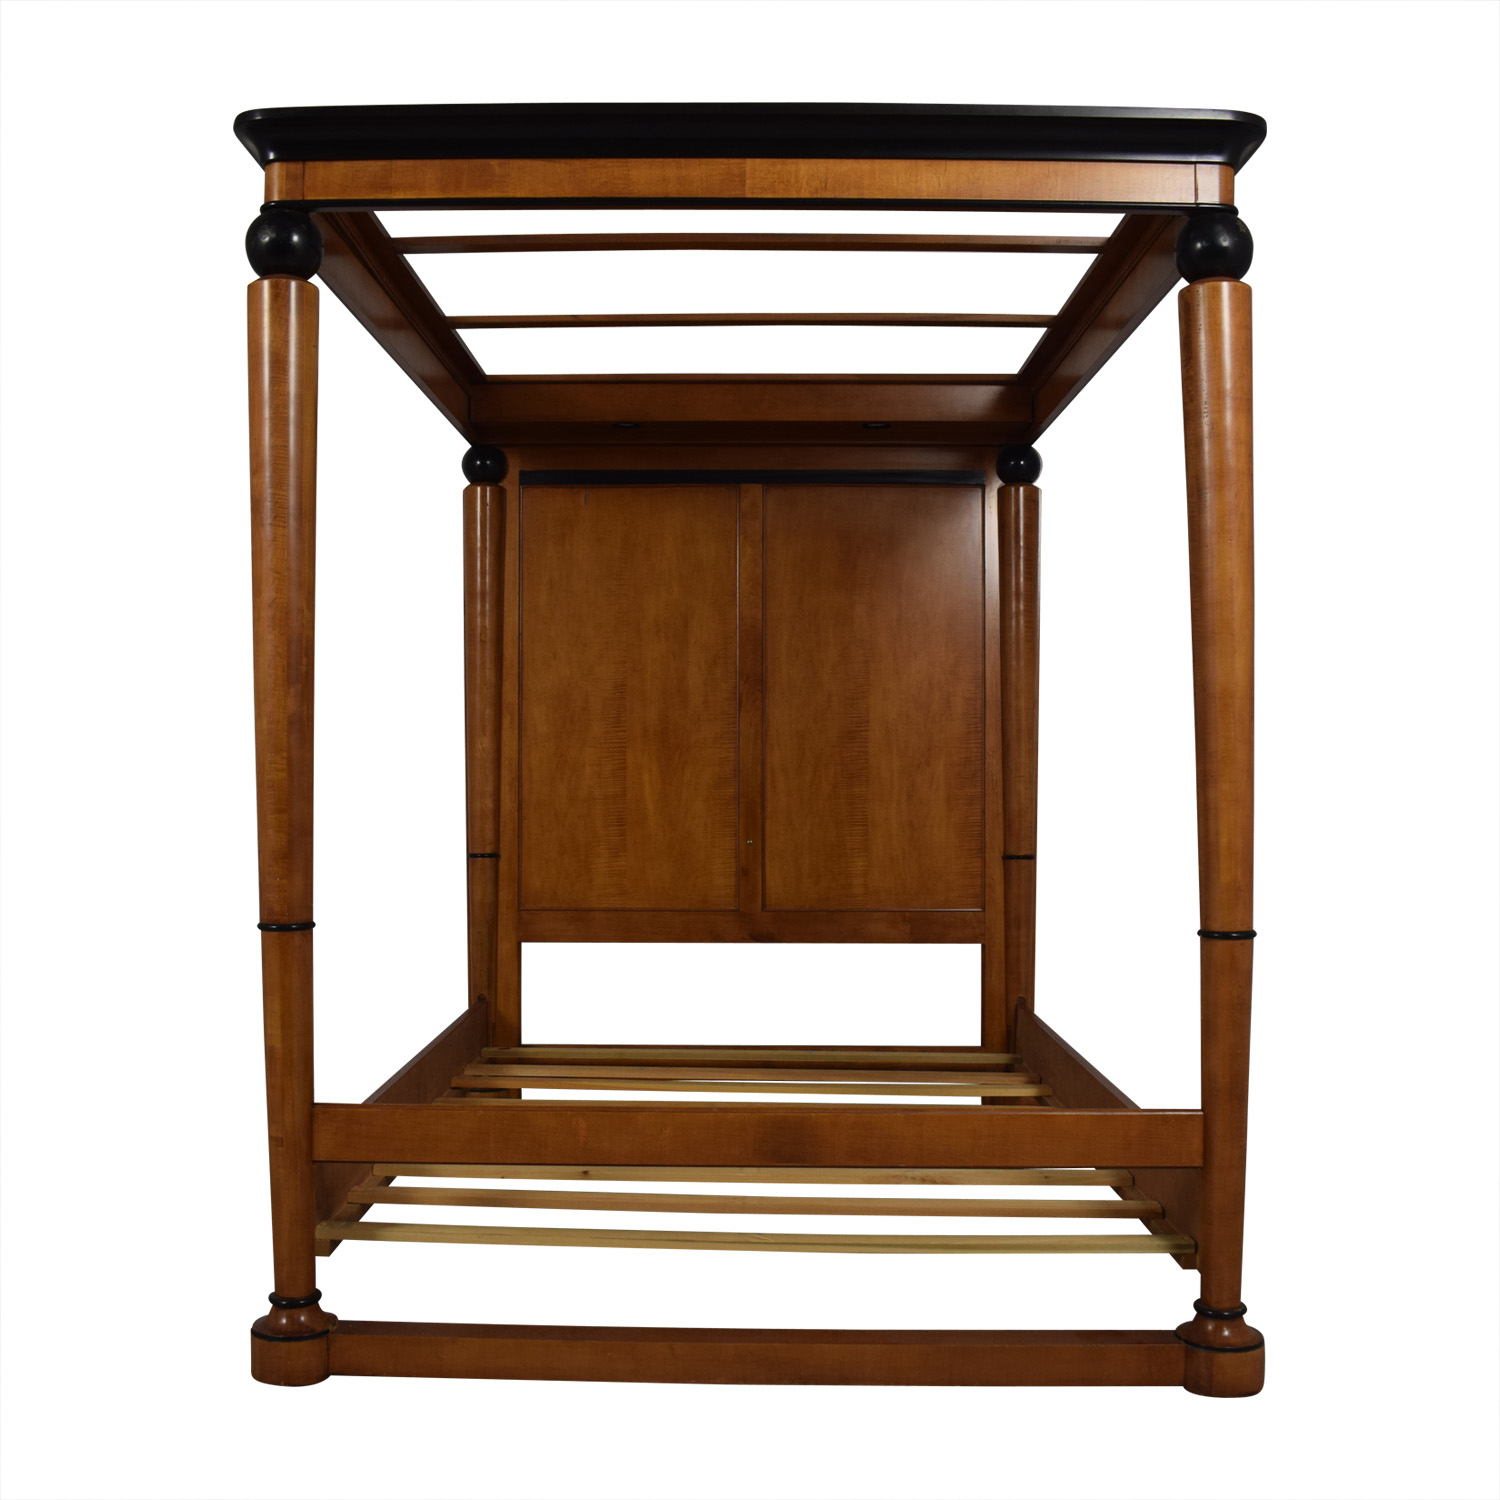 Biedermeier Biedermeier Queen Canopy Poster Bed Frame for sale